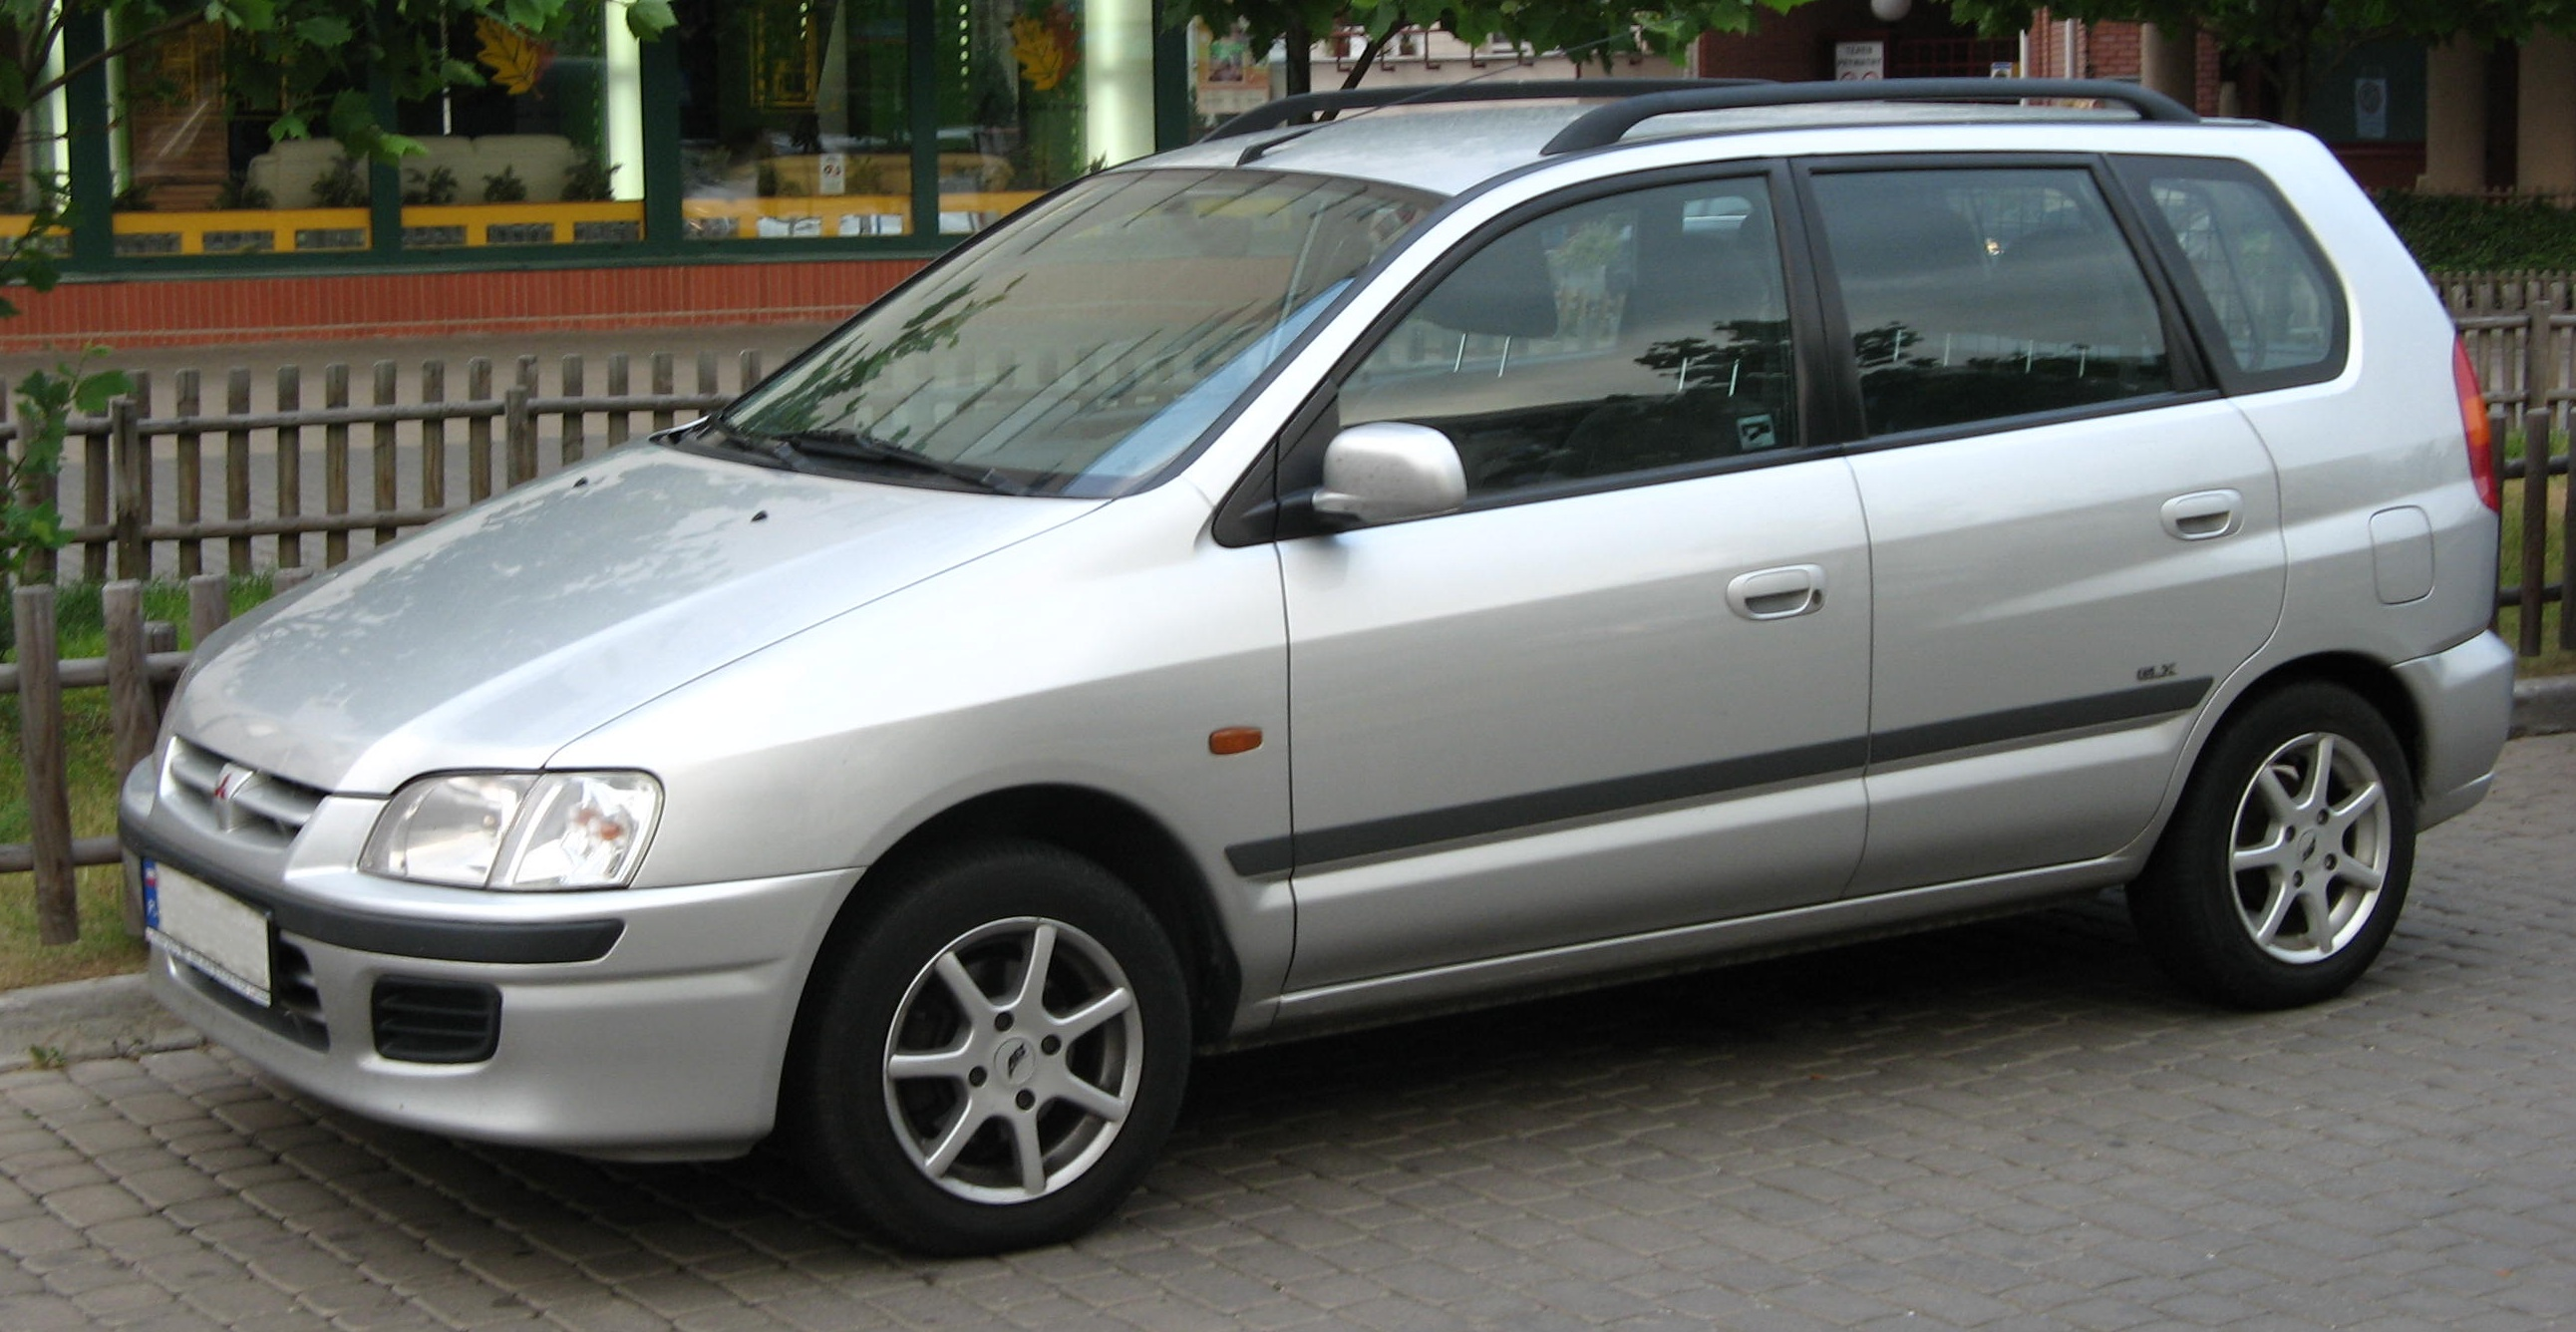 Mitsubishi spacestar photo - 2